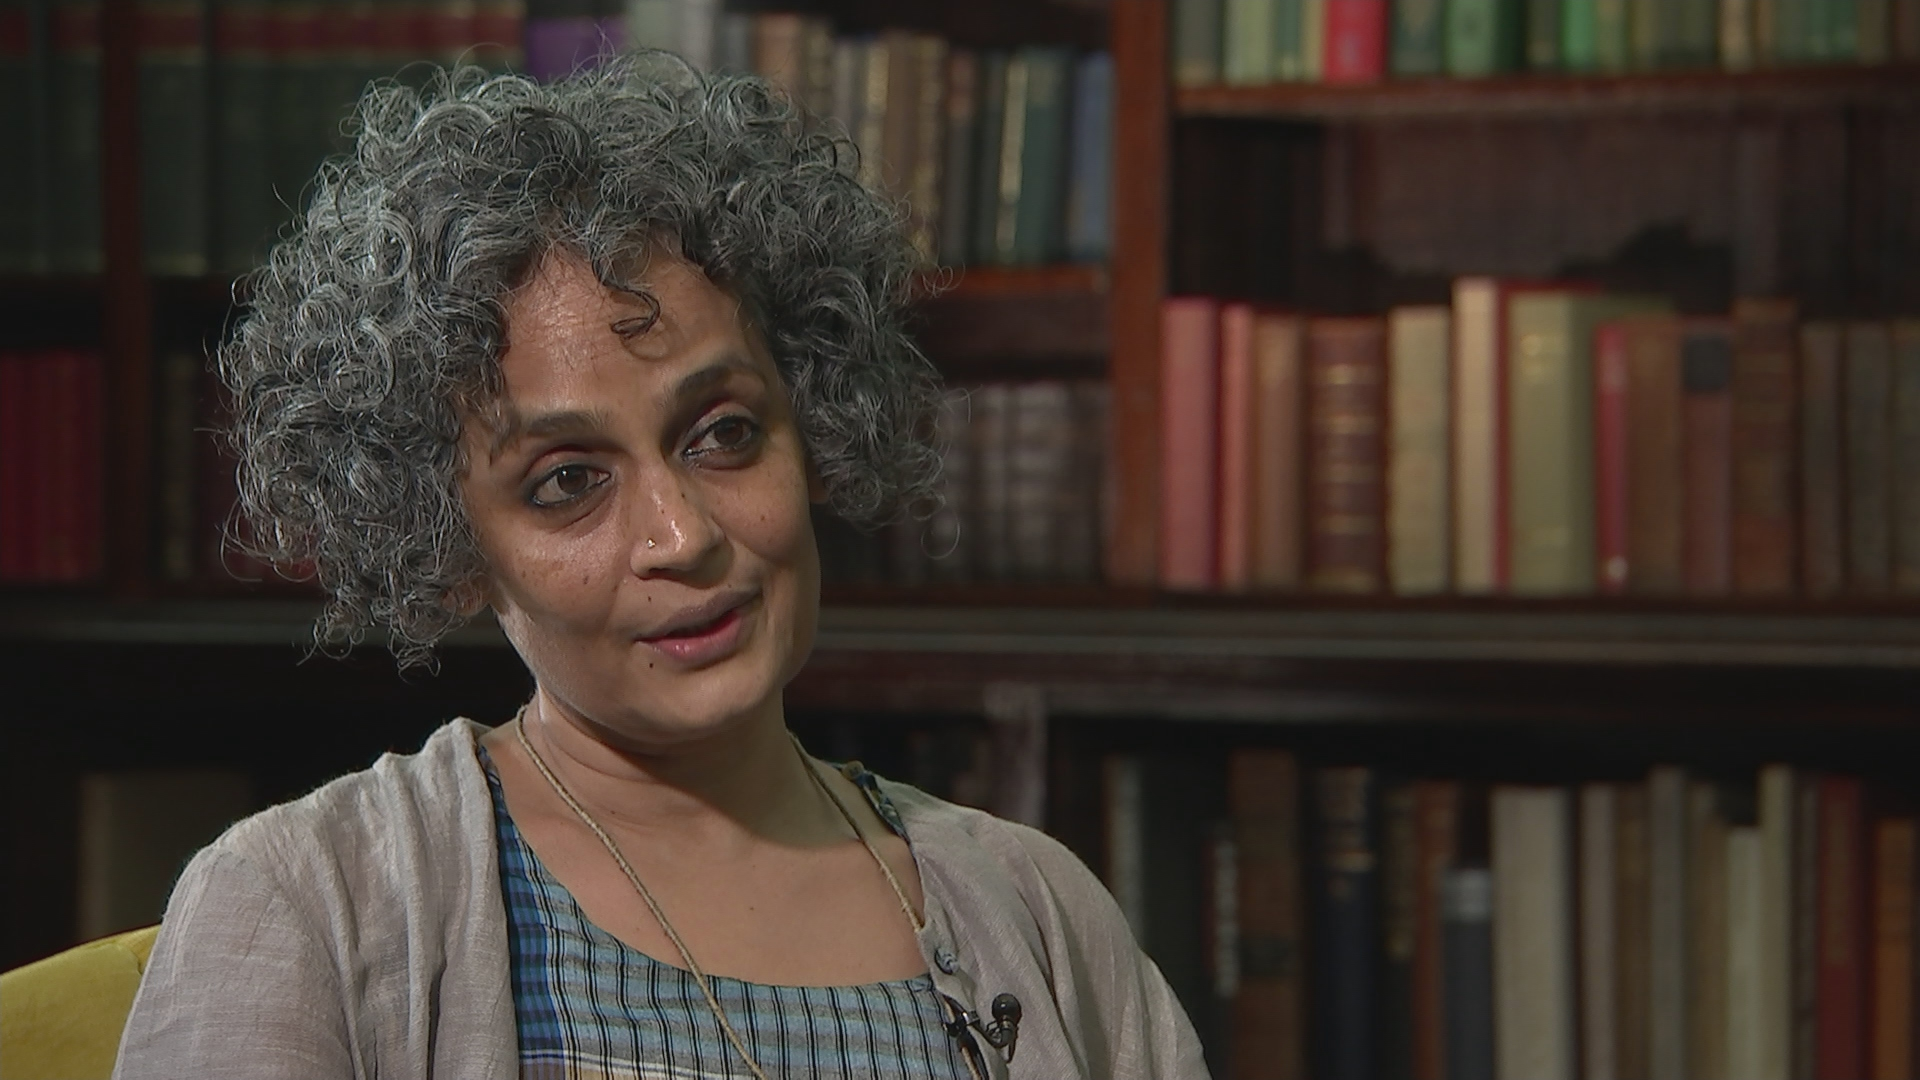 political essays by arundhati roy This breadth is unsurprising, given what roy has been up two in the last two decades — writing influential political essays and non-fiction books, lending her voice to resistance movements like those in kashmir and opposing industrial projects that would have devastating environmental effects (her protest.